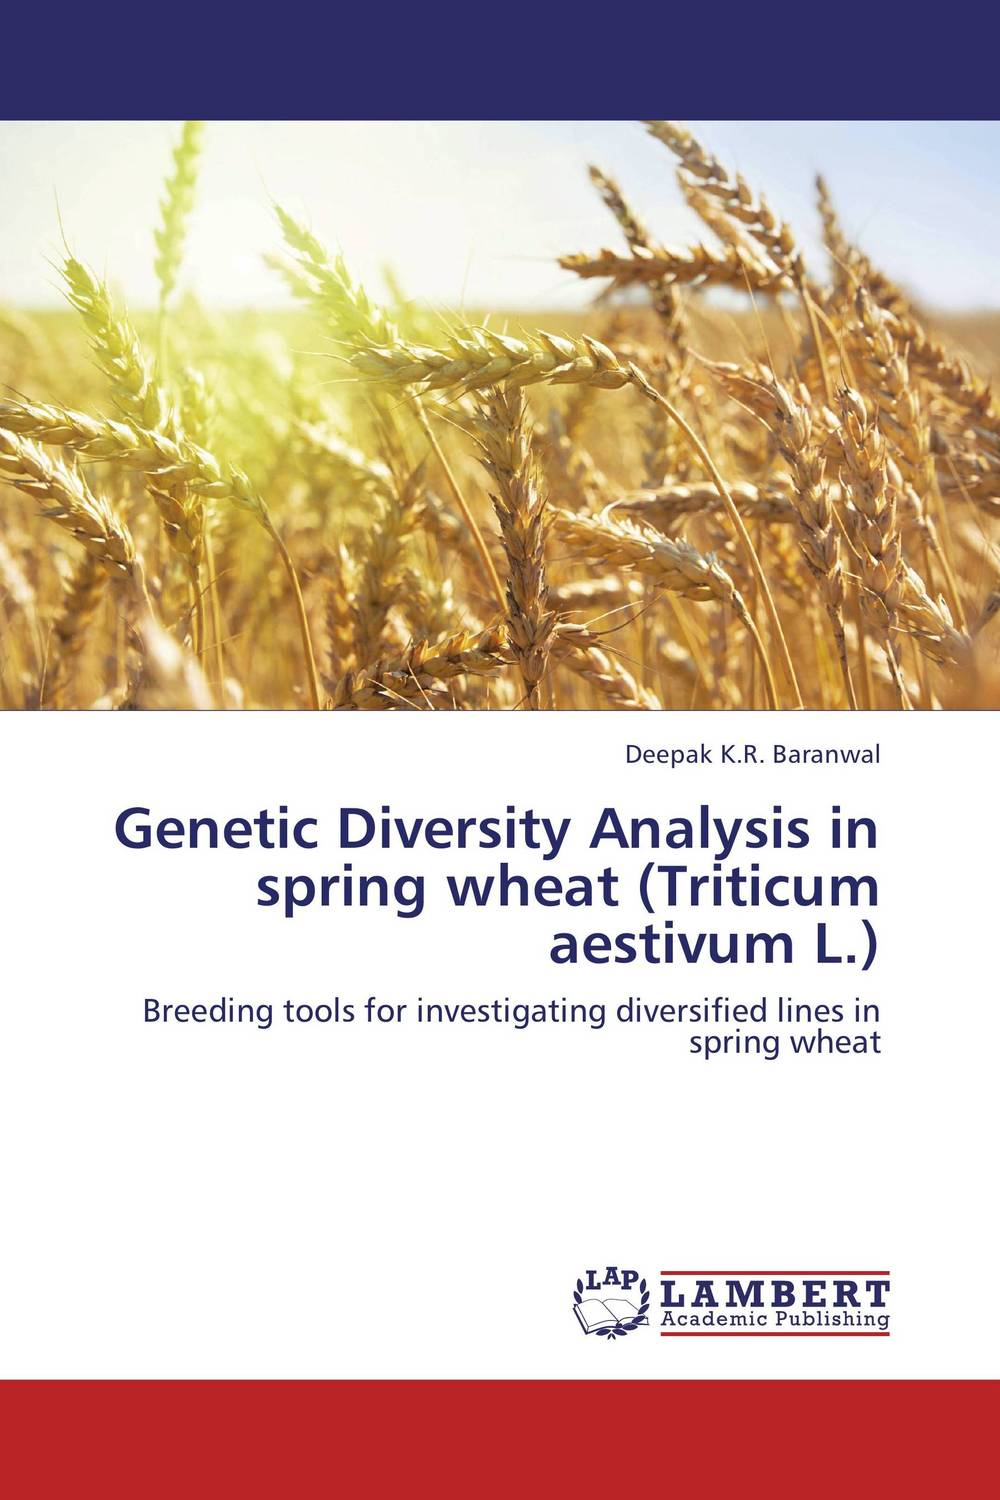 Genetic Diversity Analysis in spring wheat  (Triticum aestivum L.) genetic variation for stem rust resistance in spring wheat